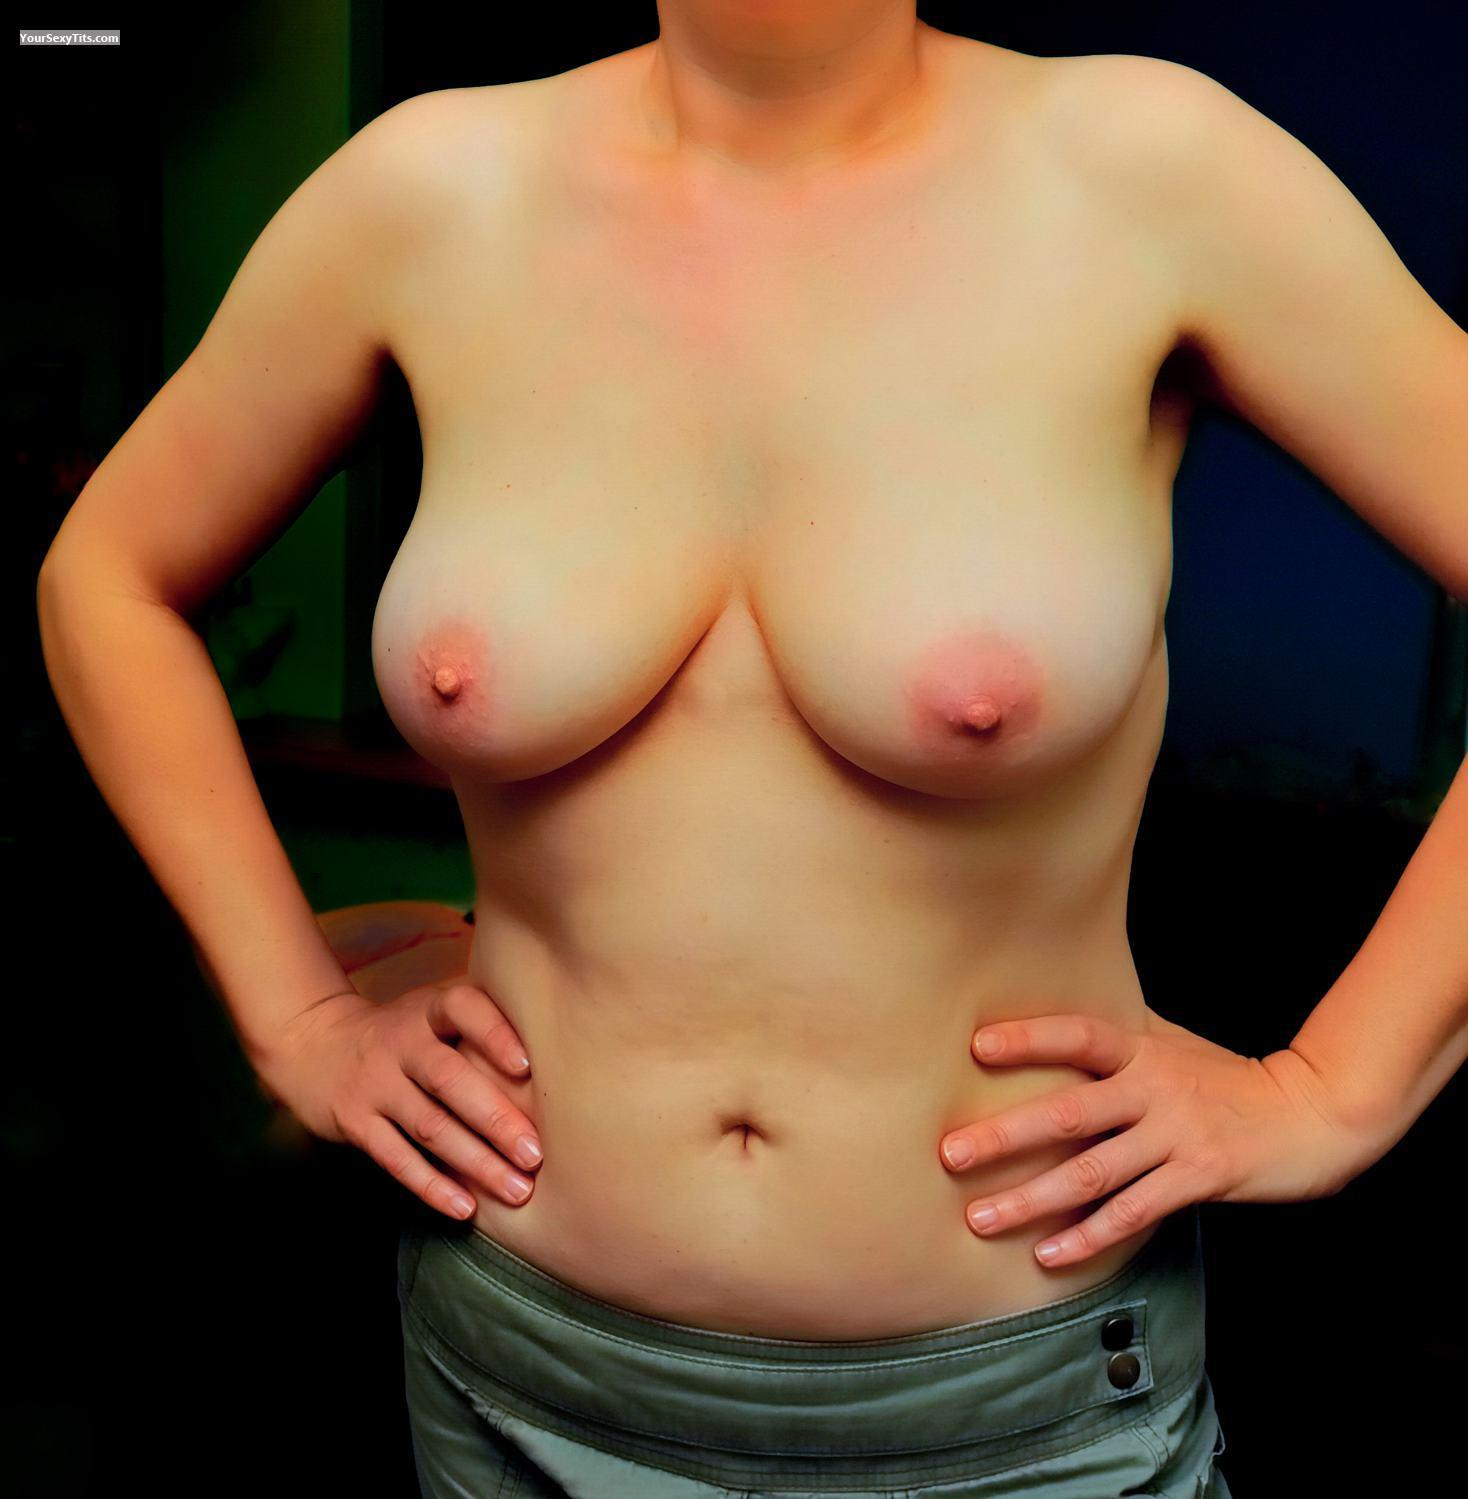 Tit Flash: Medium Tits - Ringo from Netherlands Antilles